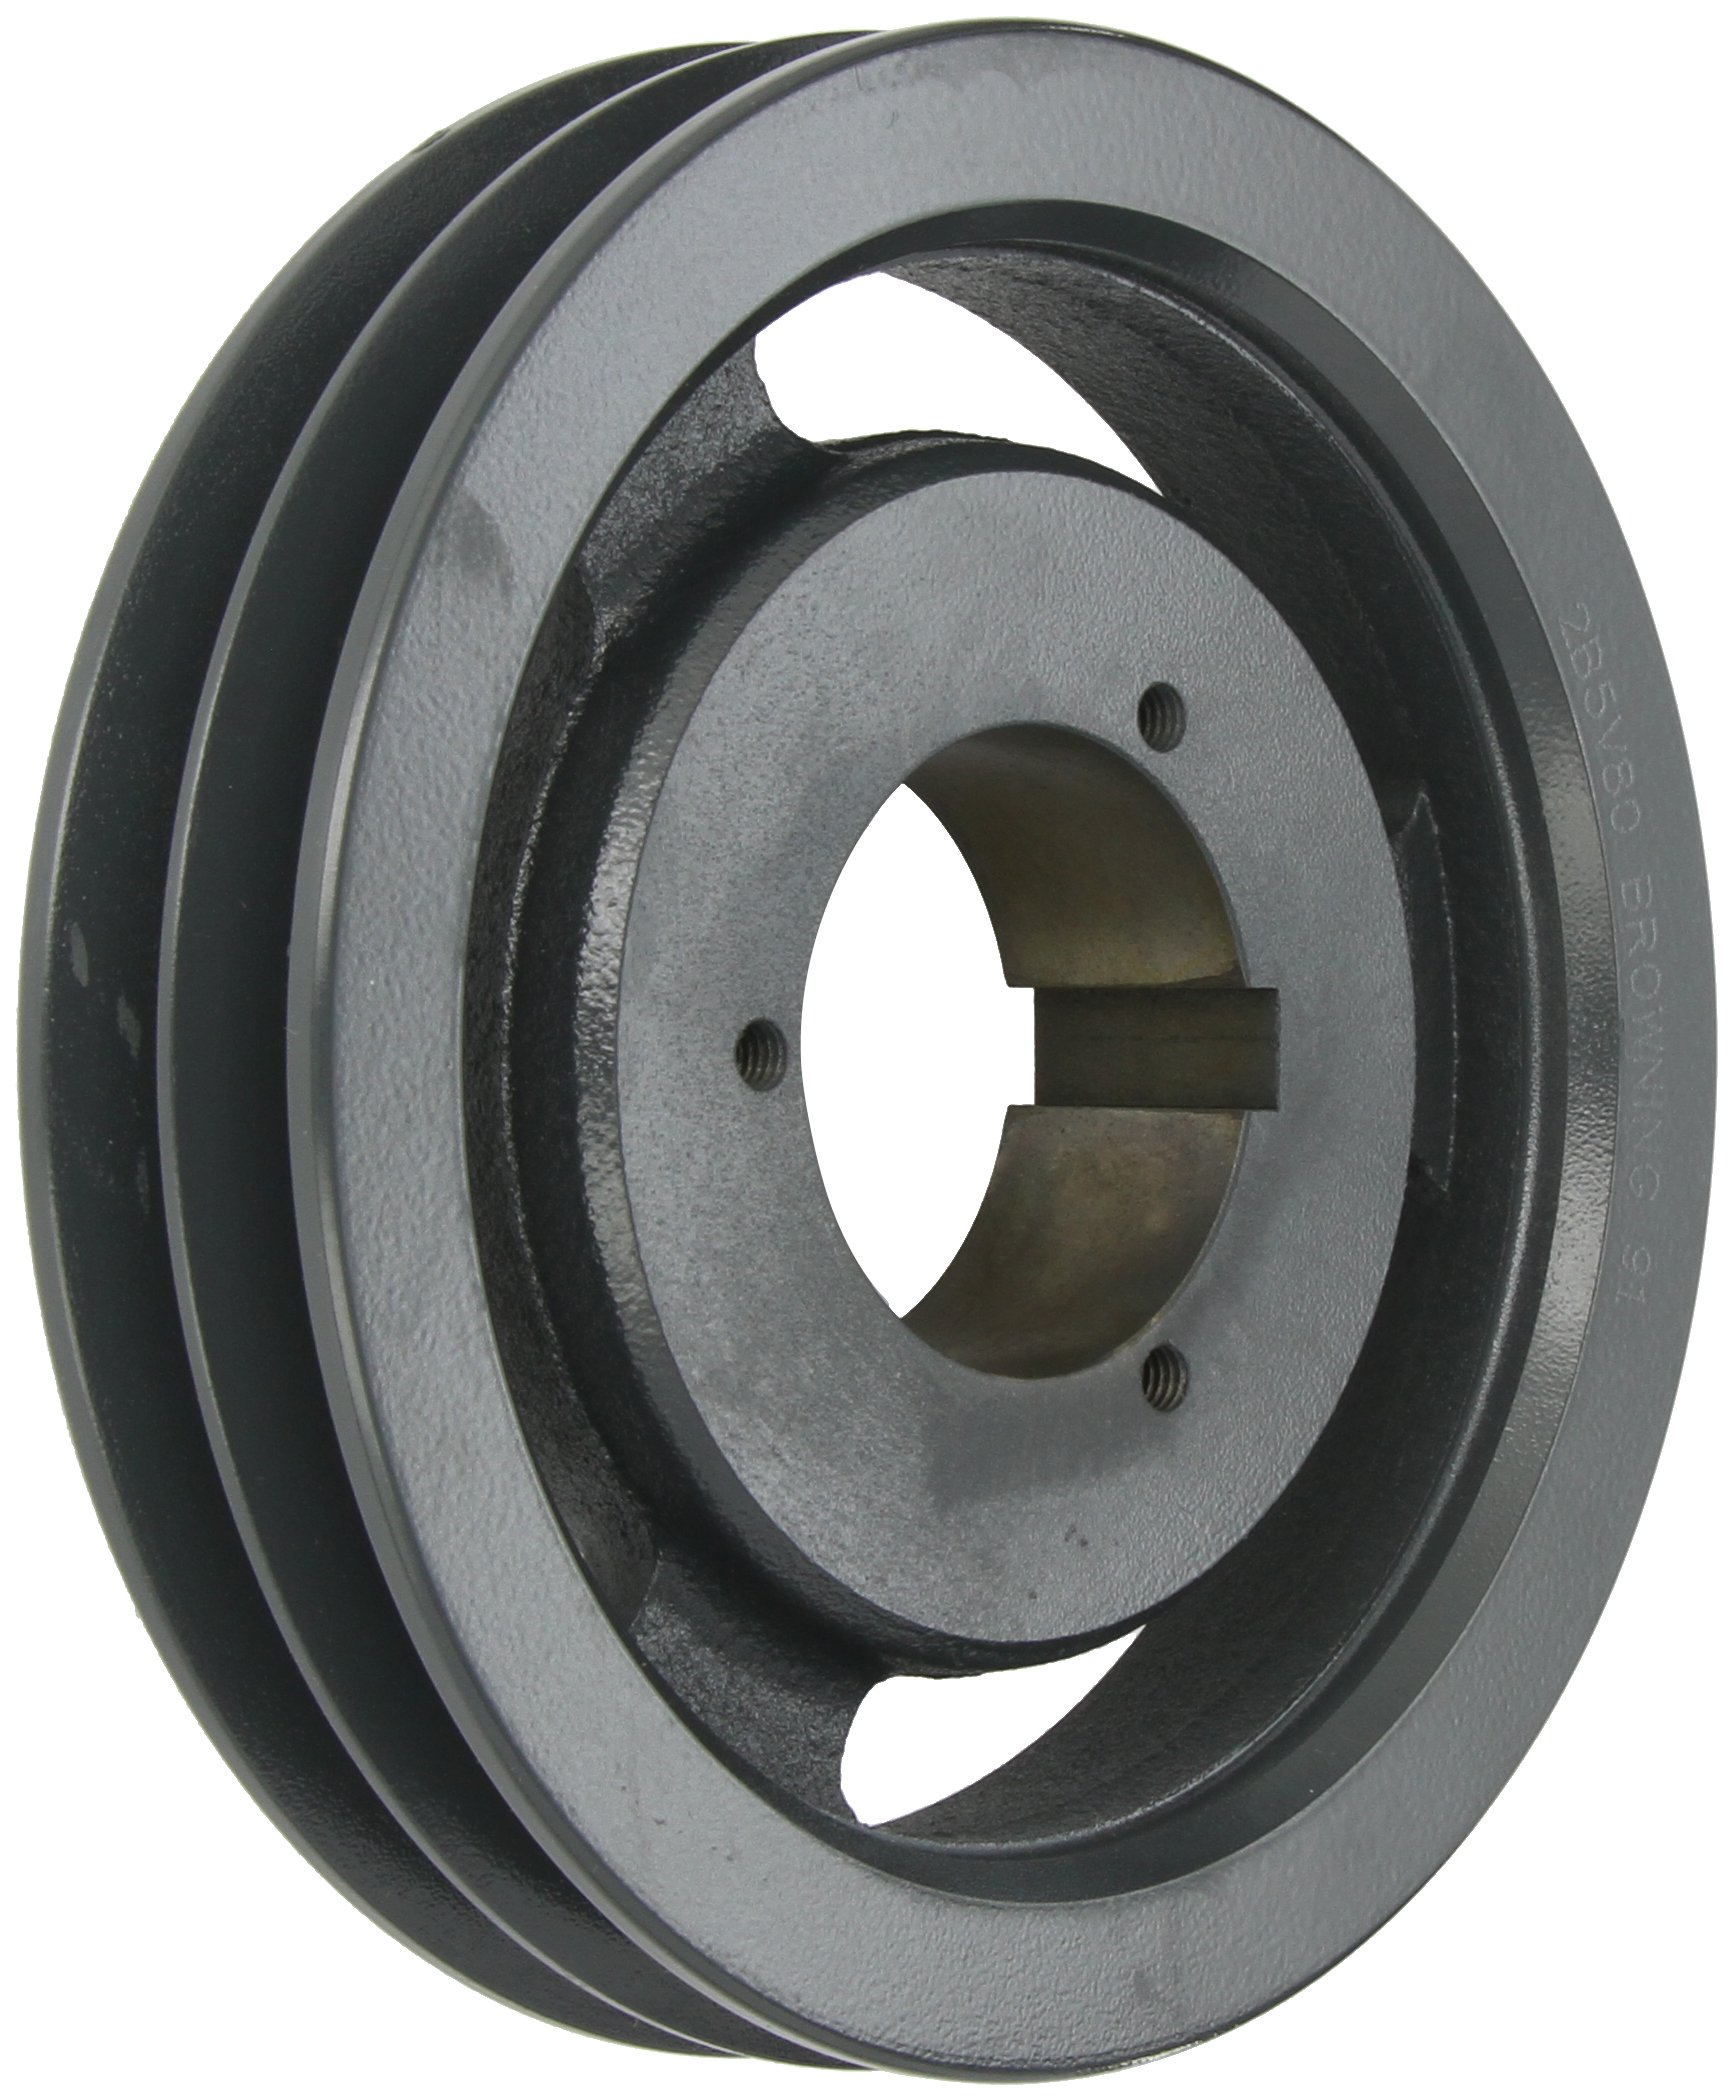 Browning 2B5V80 Split Taper Sheave, Cast Iron, 2 Groove, A, B or 5V Belt, Uses B Bushing